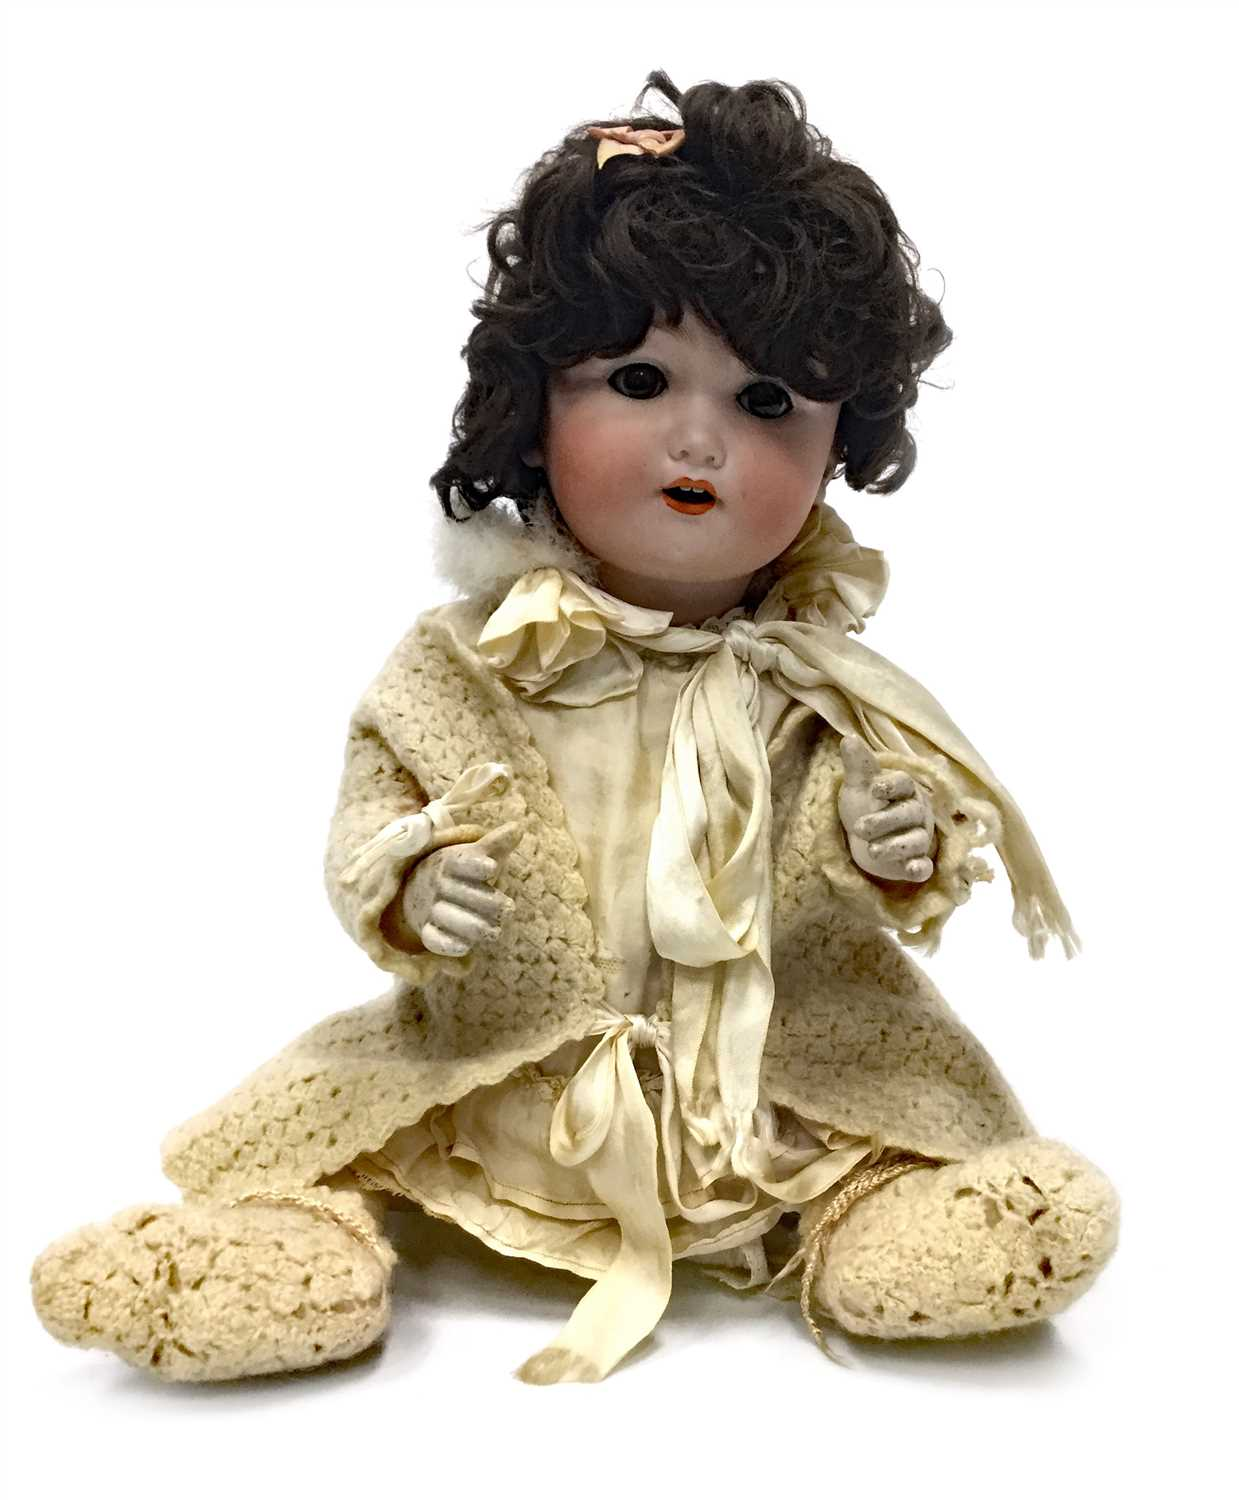 Lot 905-AN EARLY 20TH CENTURY GERMAN BISQUE HEADED DOLL